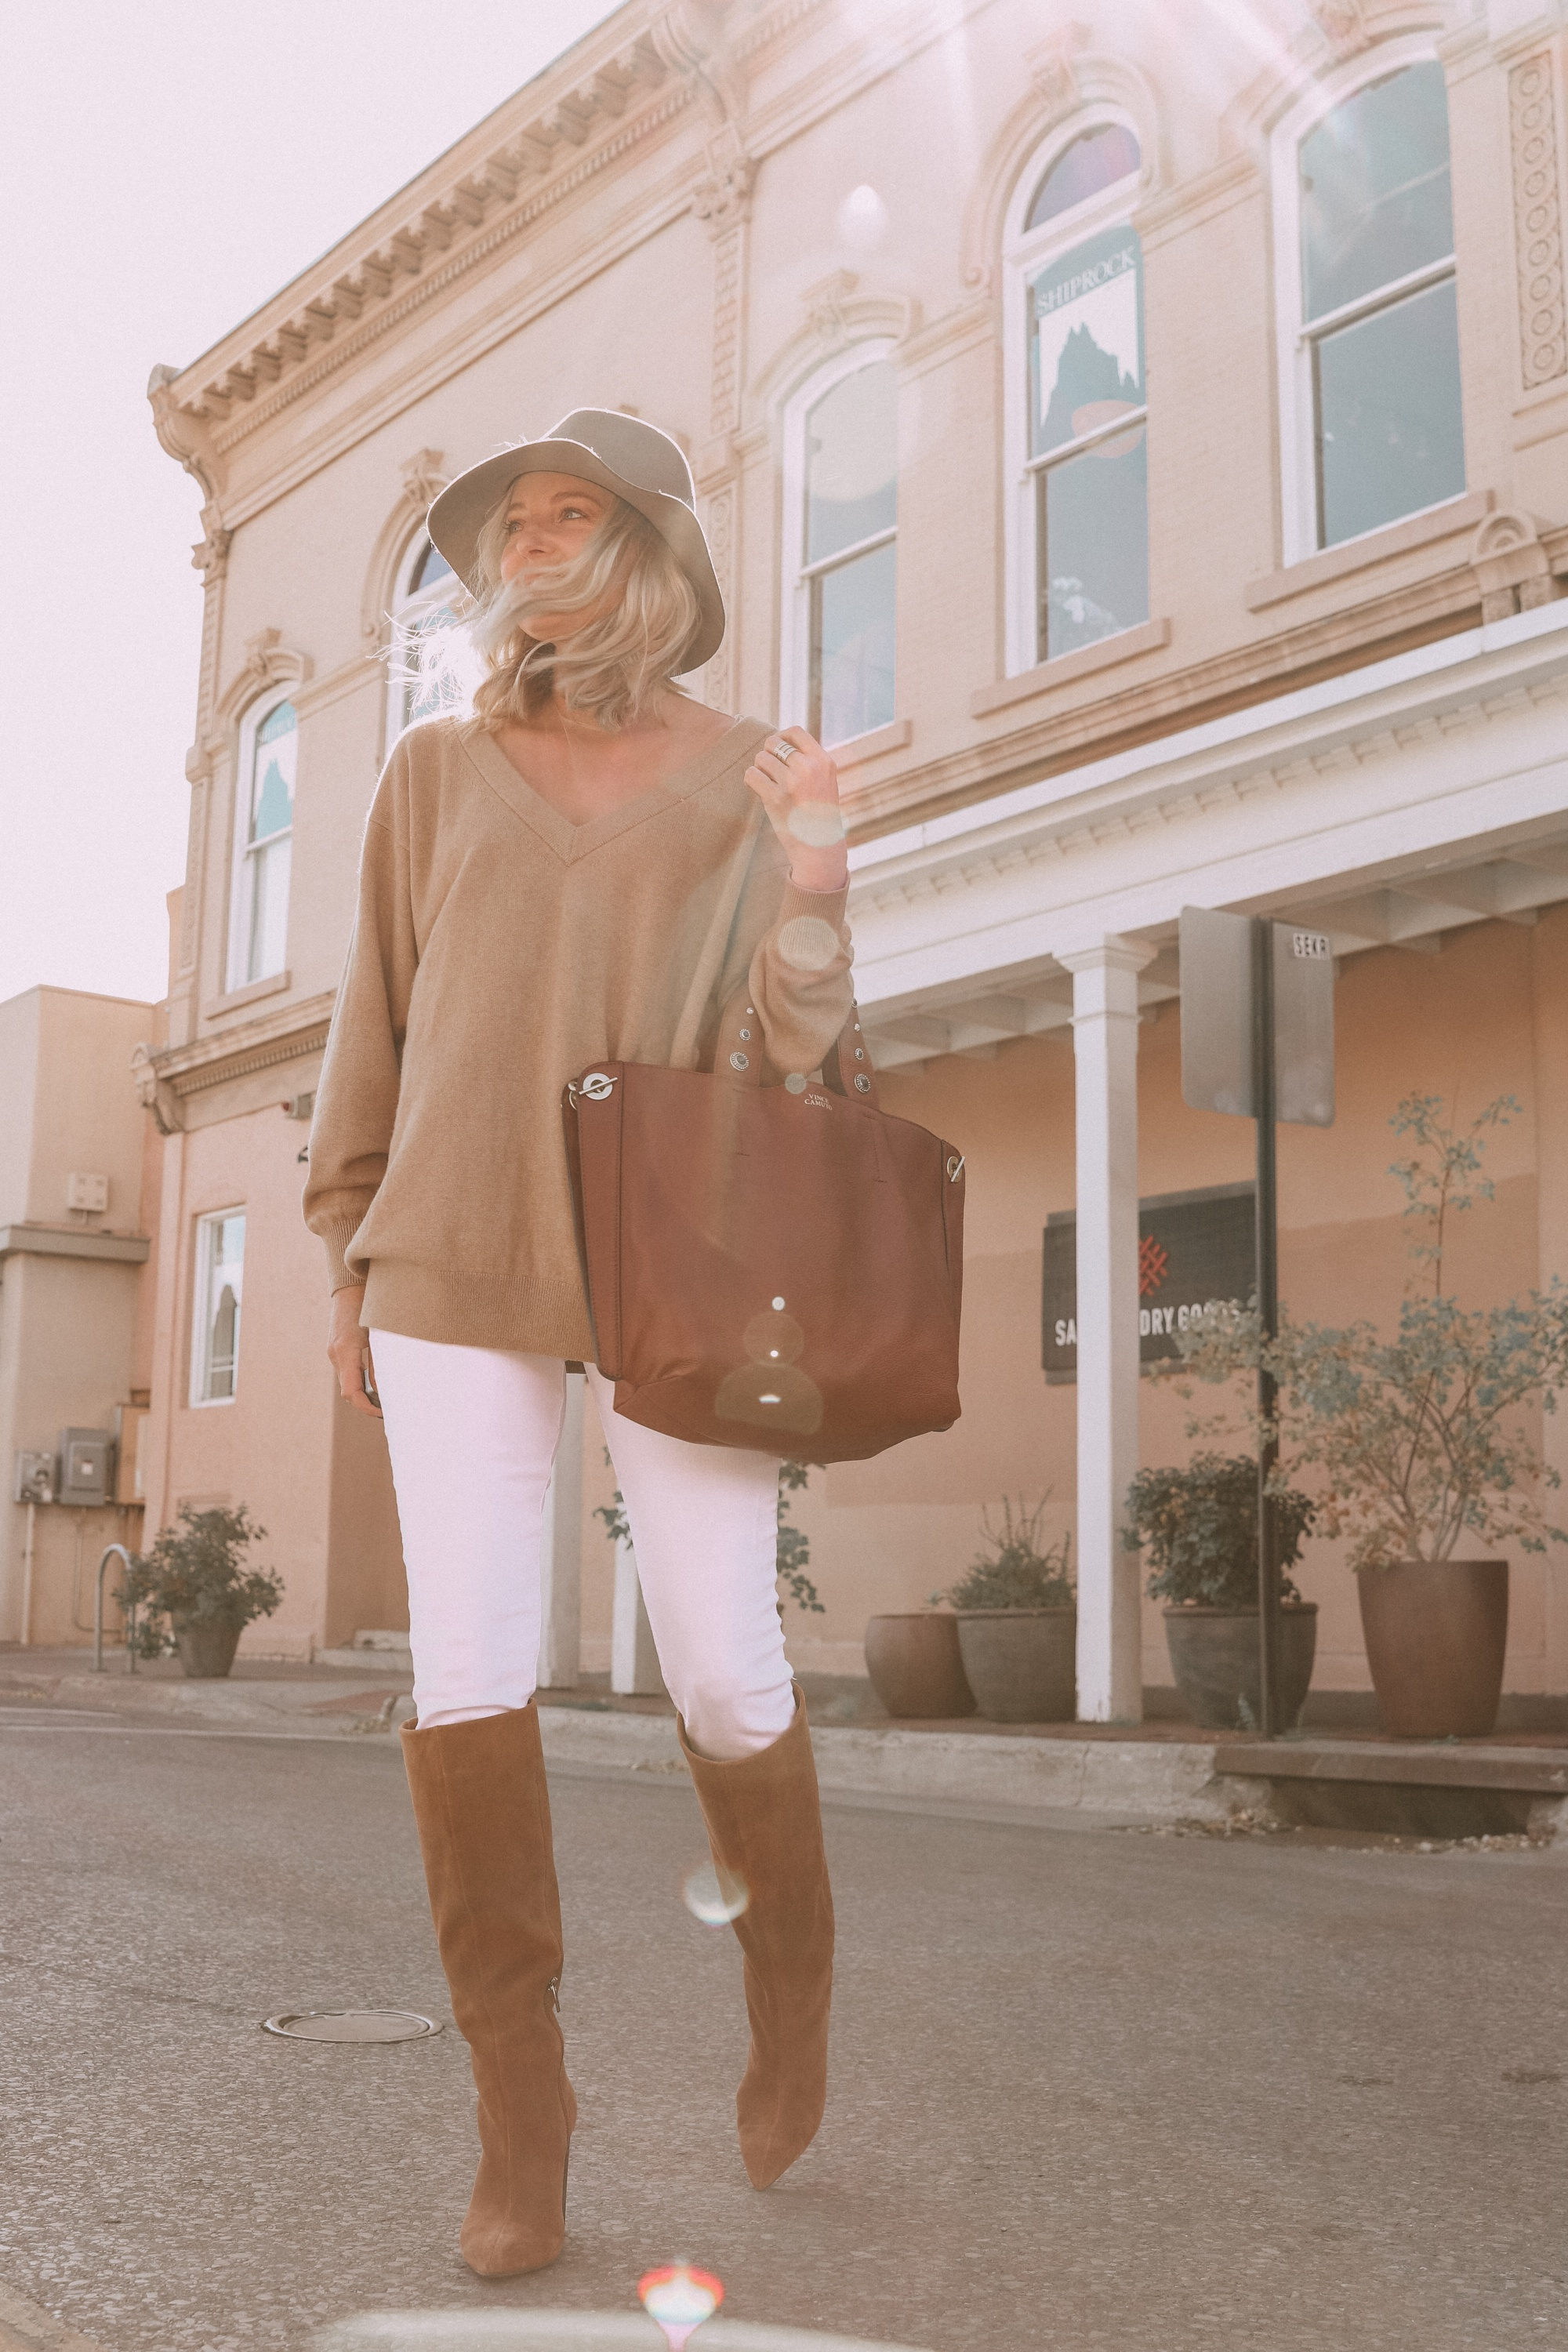 Brown Accessories For Fall, Fashion blogger Erin Busbee of BusbeeStyle.com wearing brown boots and brown tote from Vince Camuto with white jeans, camel sweater, leopard scarf, and Rag & bone hat in Santa Fe, New Mexico